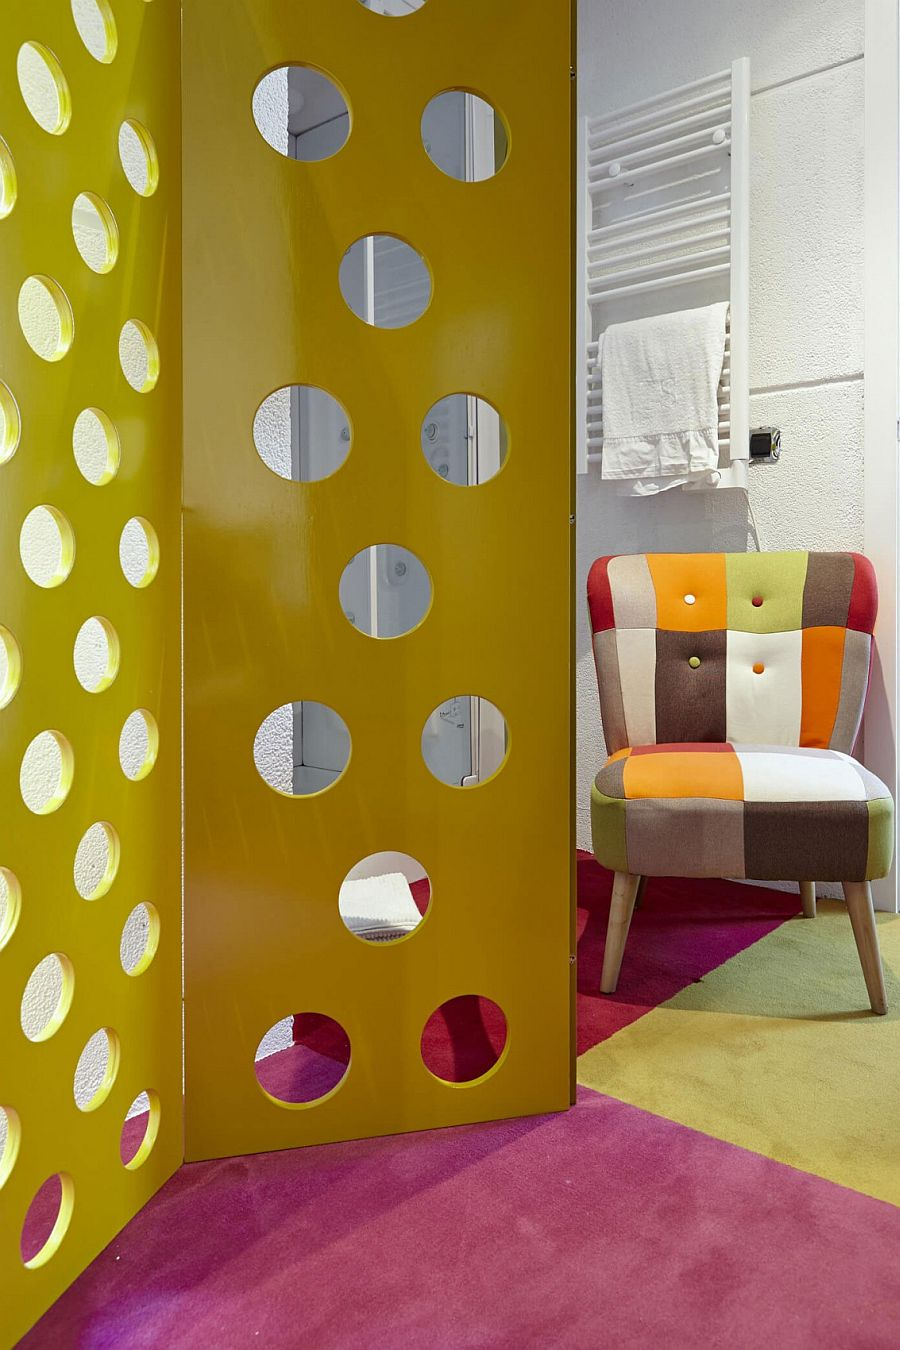 Eclectic Decor and Vivacious Color Shape Cheerful Home in Madrid